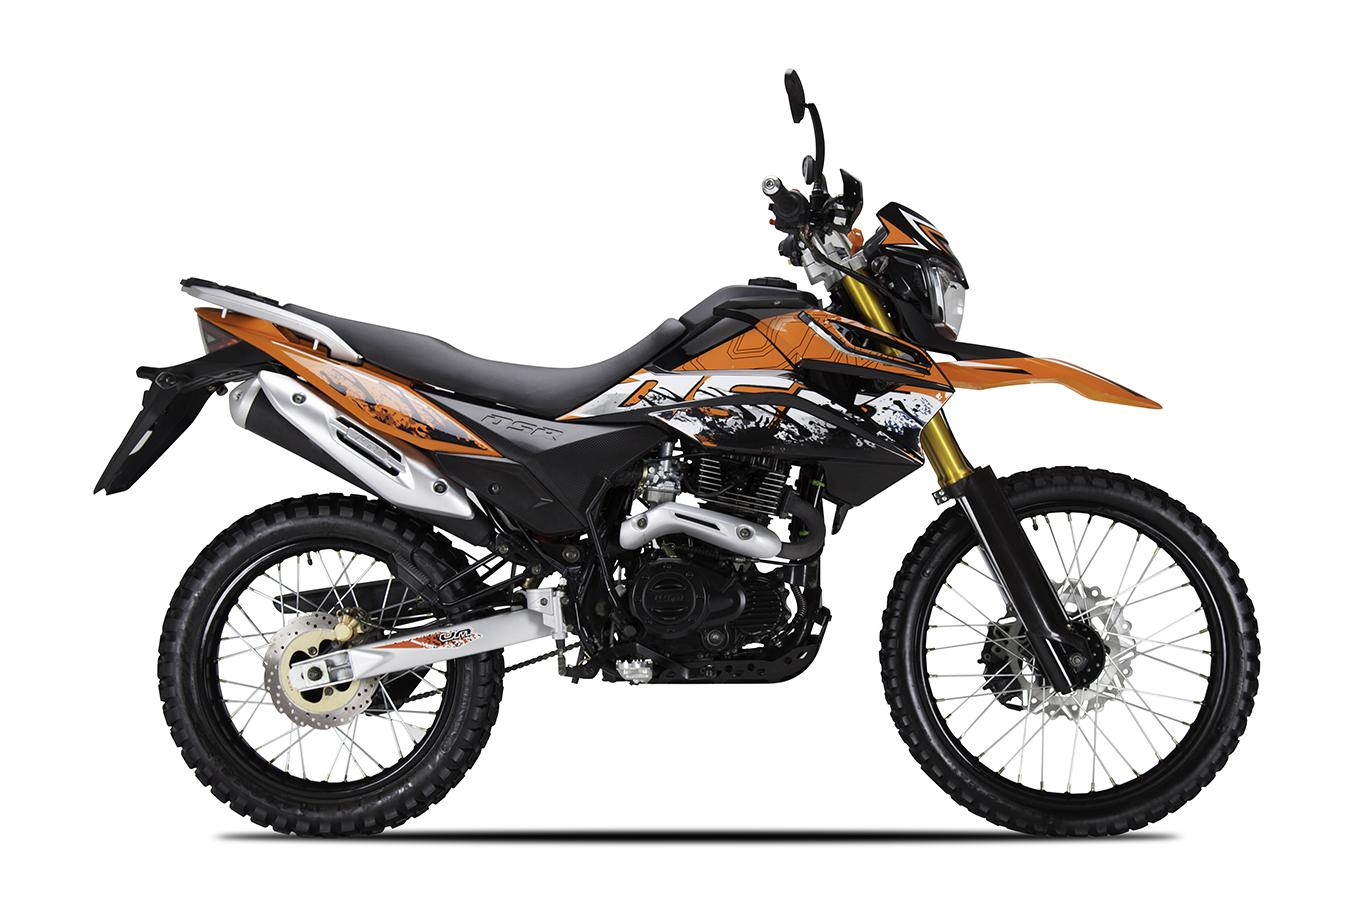 Dsr Ii 200 (reservation Fee Only) By Um Motorcycle Philippines.